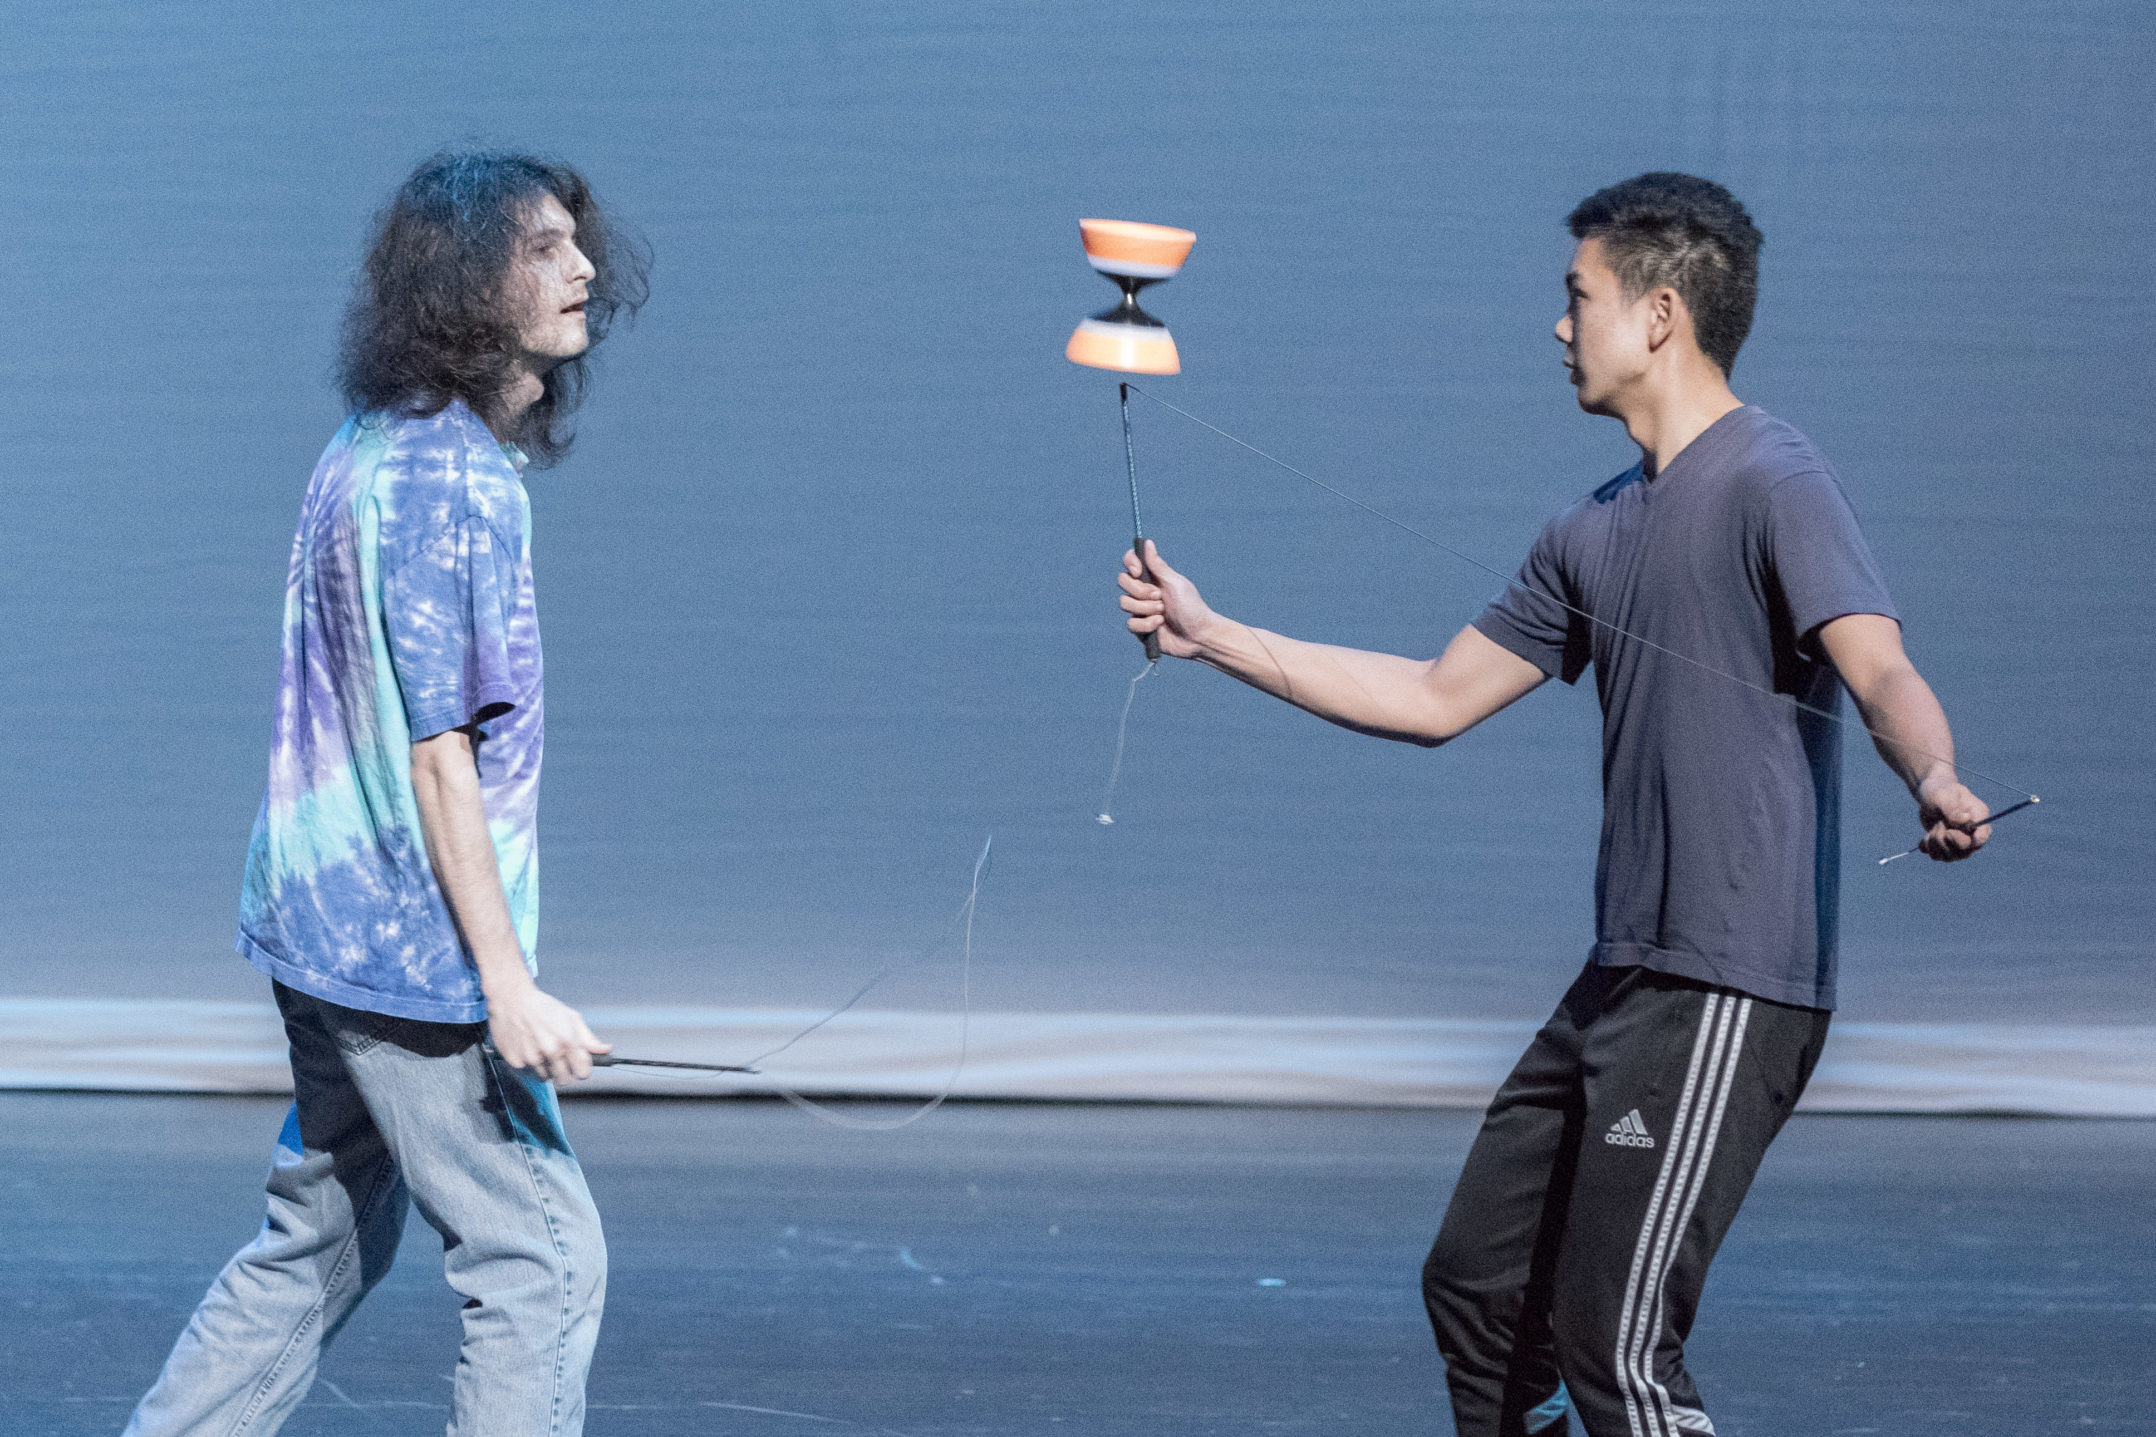 Allen Chan, '18, and Brian Bell, '17, pass a Chinese yoyo to one another on Thursday, Nov. 12, 2017, in Zoellner Arts Center. Chan has performed at Fusion in the past. (Roshan Giyanani/B&W Staff)